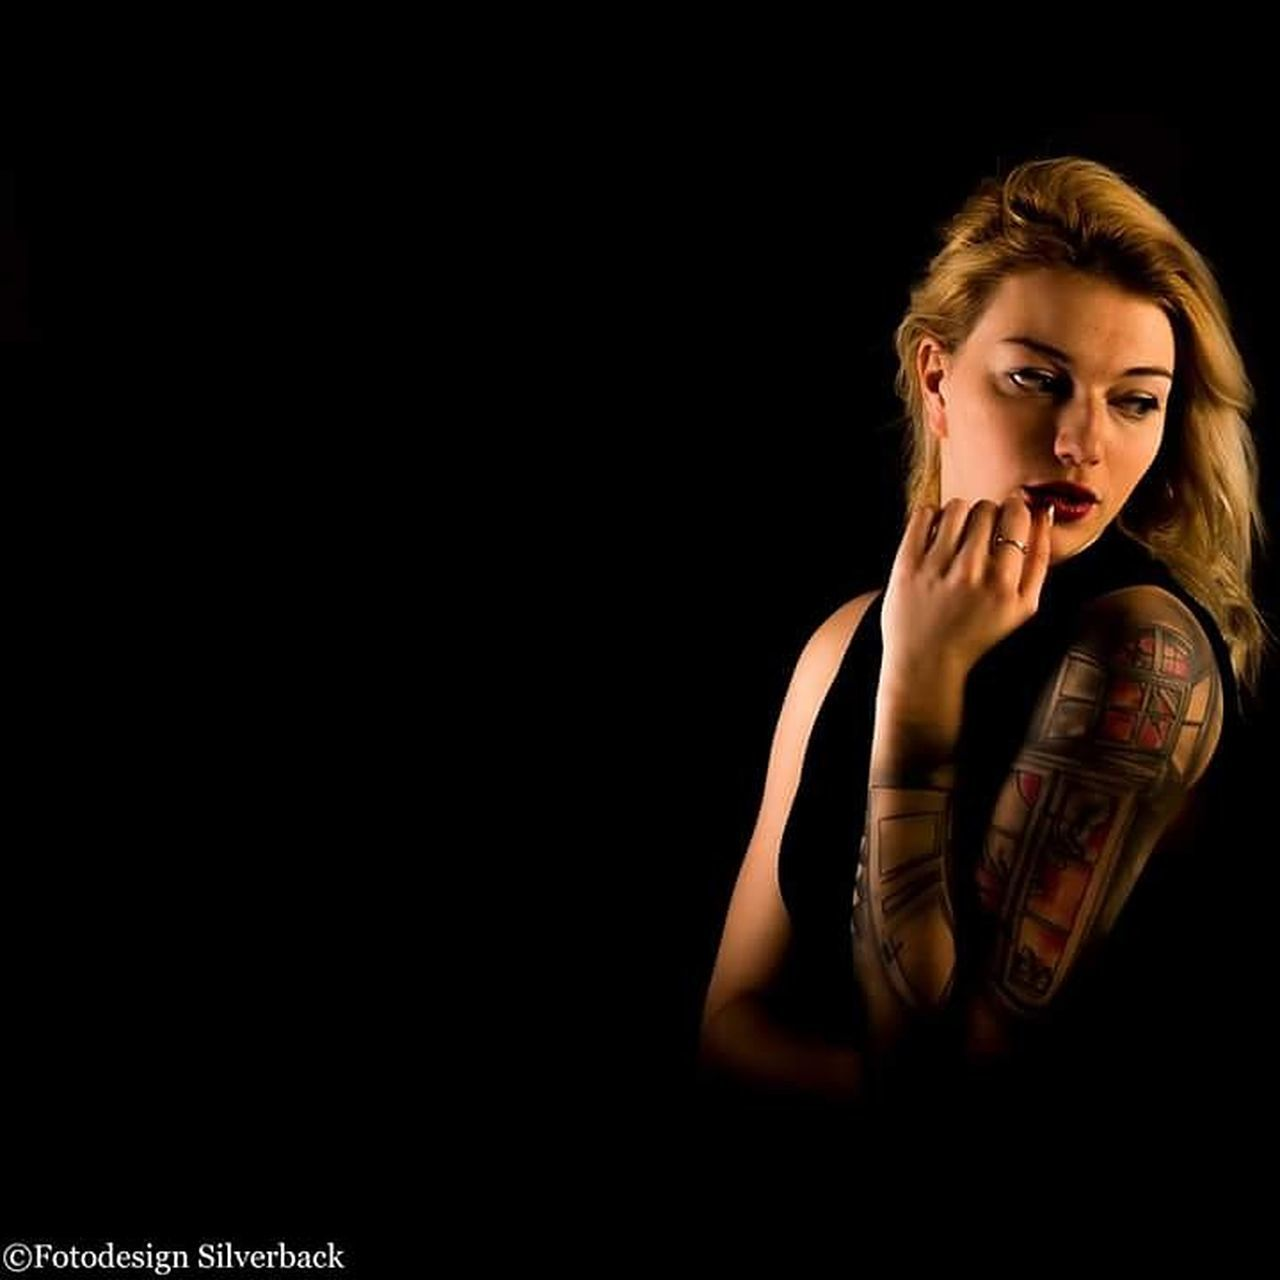 Depression - Sadness Headshot One Person Emotional Stress Shadow Dark Black Background Women One Woman Only One Young Woman Only Human Body Part Indoors  Close-up People Young Women Only Women Tattooed Tattoo Girl